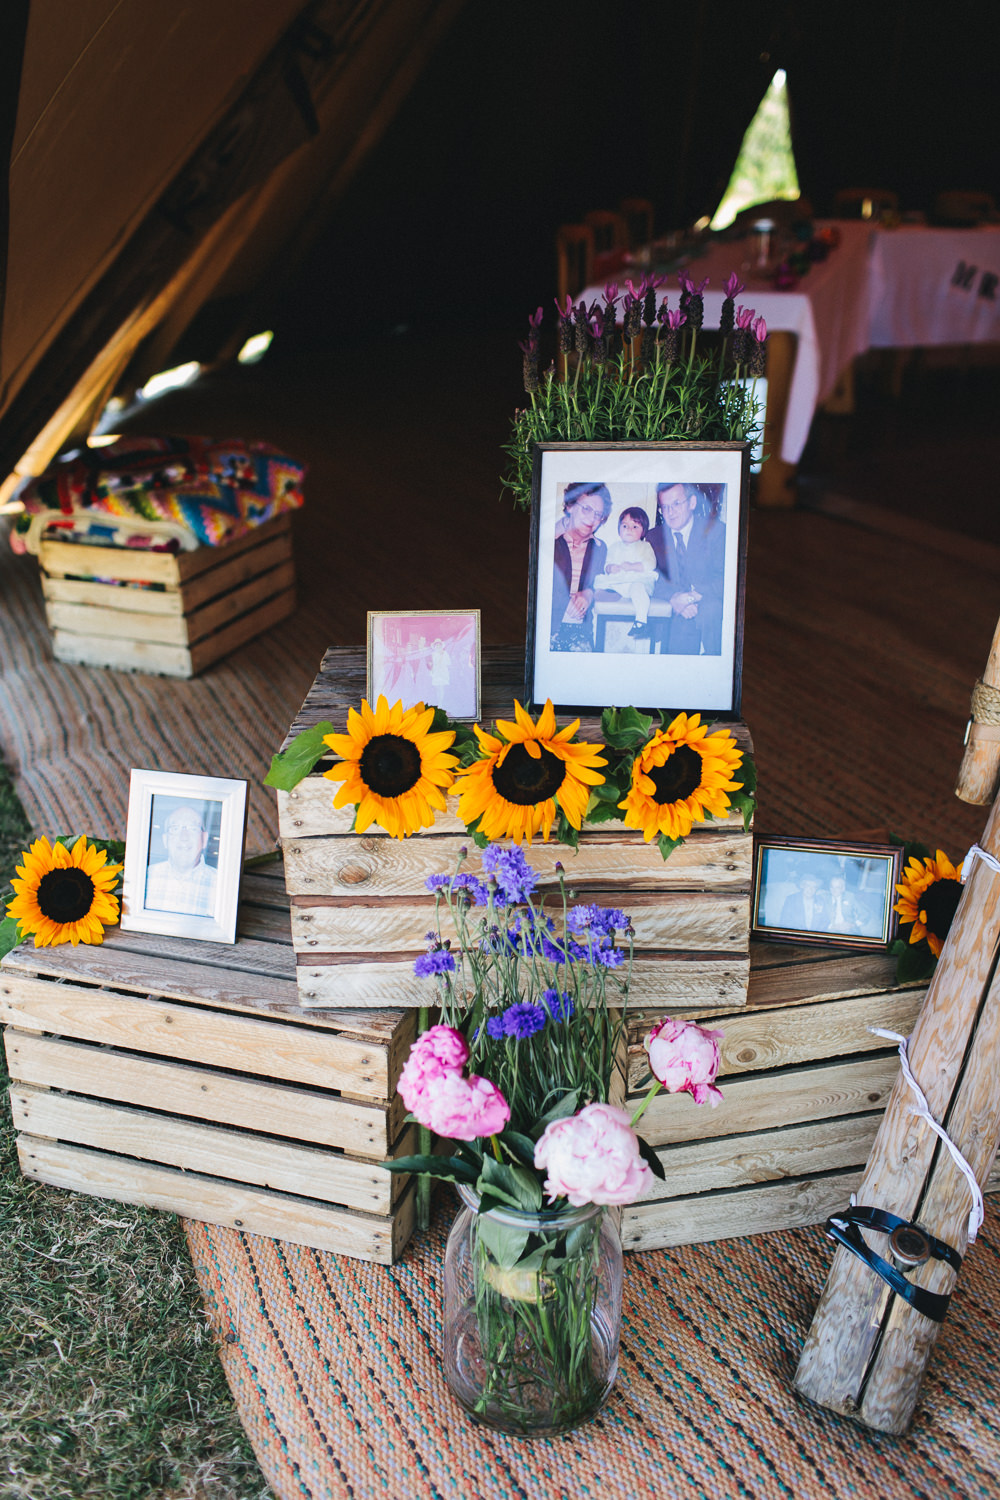 Wooden Crates Sunflower Photographs Violet Flowers Floral Bach Wen Farm Wedding Jessica O'Shaughnessy Photography